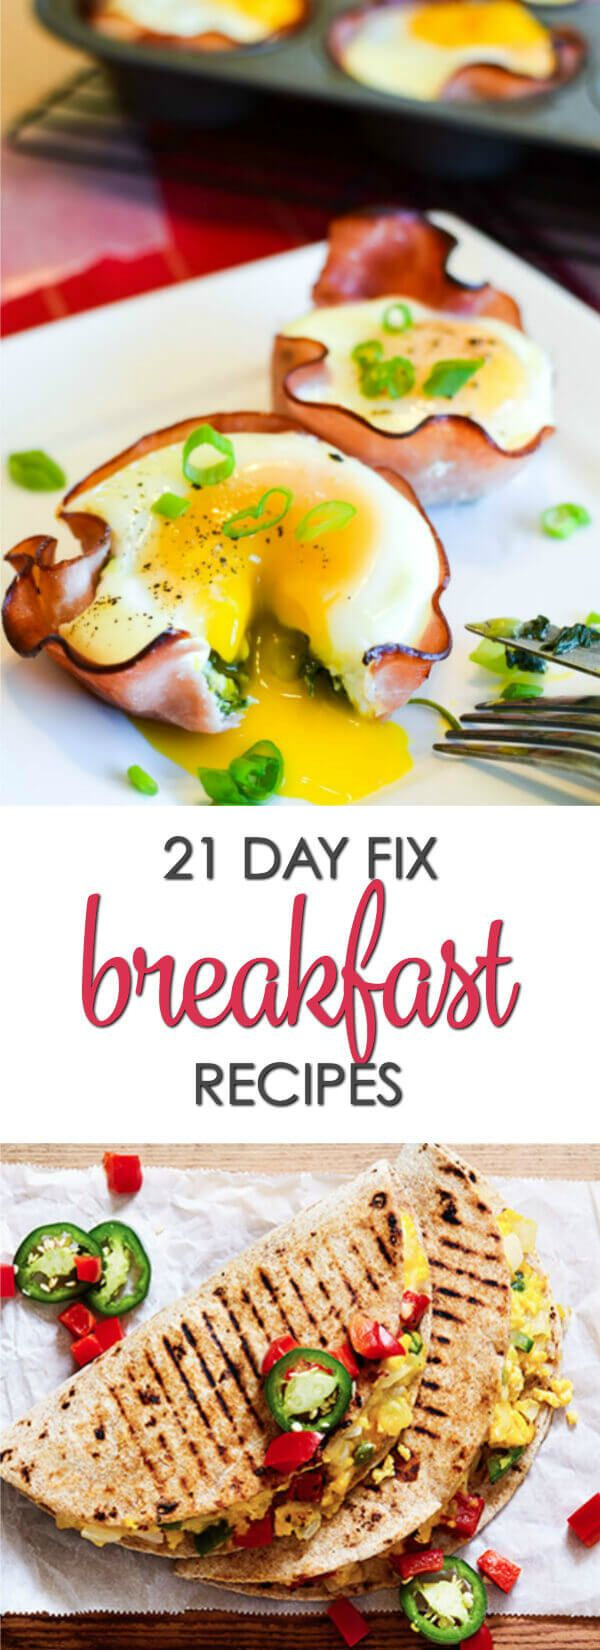 Trying to start your day off healthier?  Below are 15 surprisingly tasty 21 Day Fix breakfast recipes you are sure to love.  #Itisakeeper #recipes #21DayFix